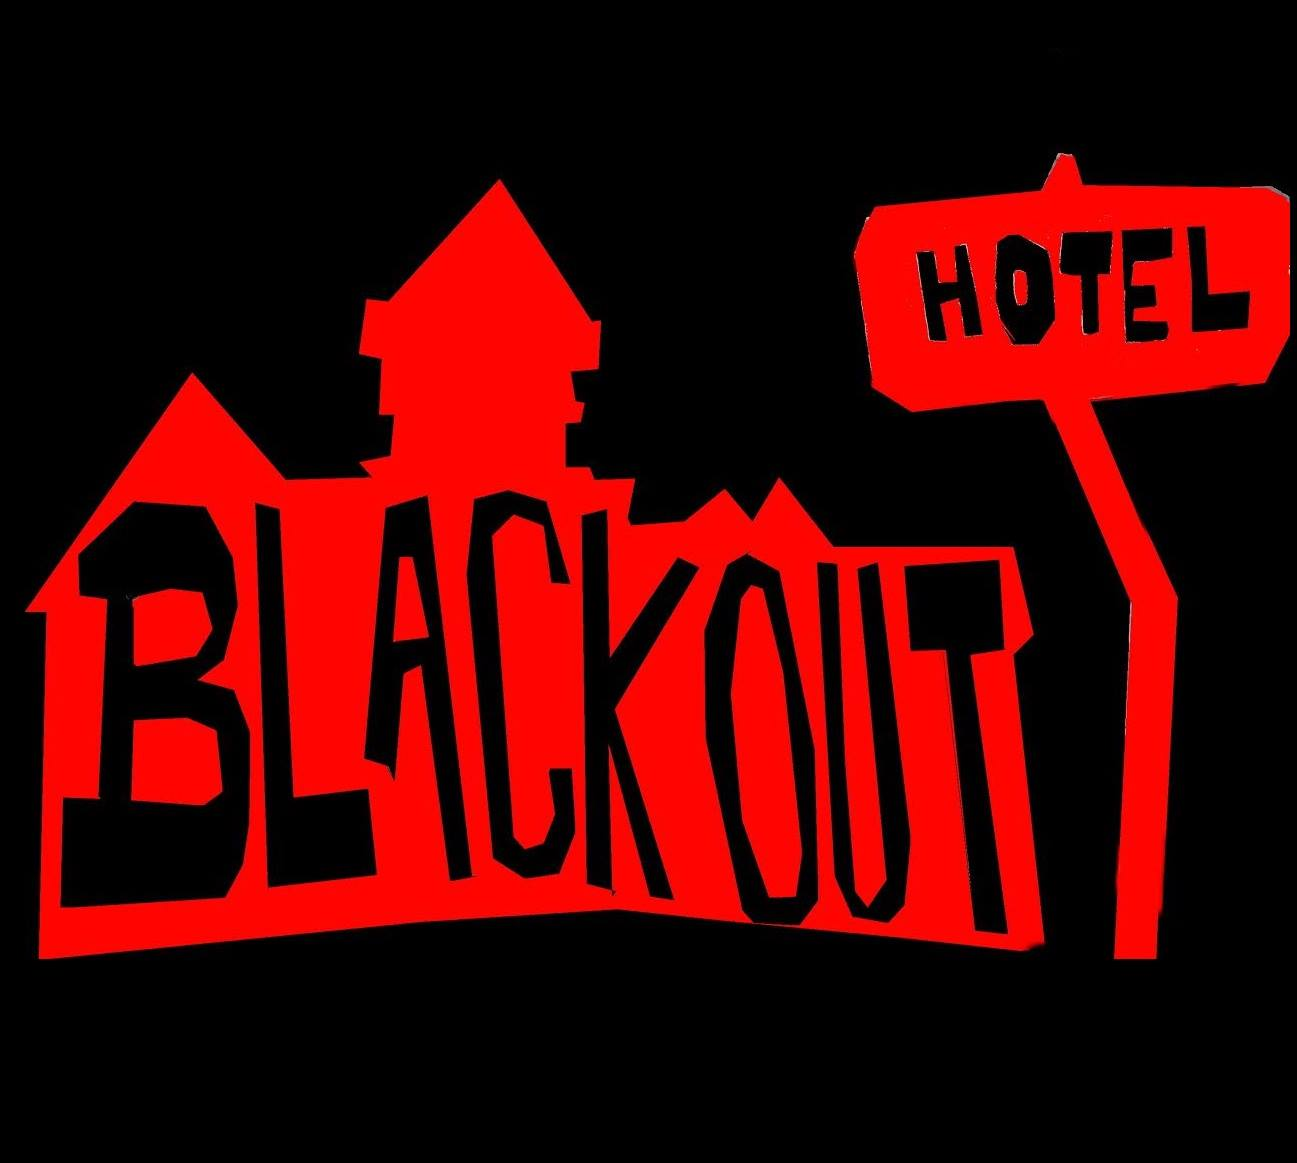 Blackout Hotel Merch Store